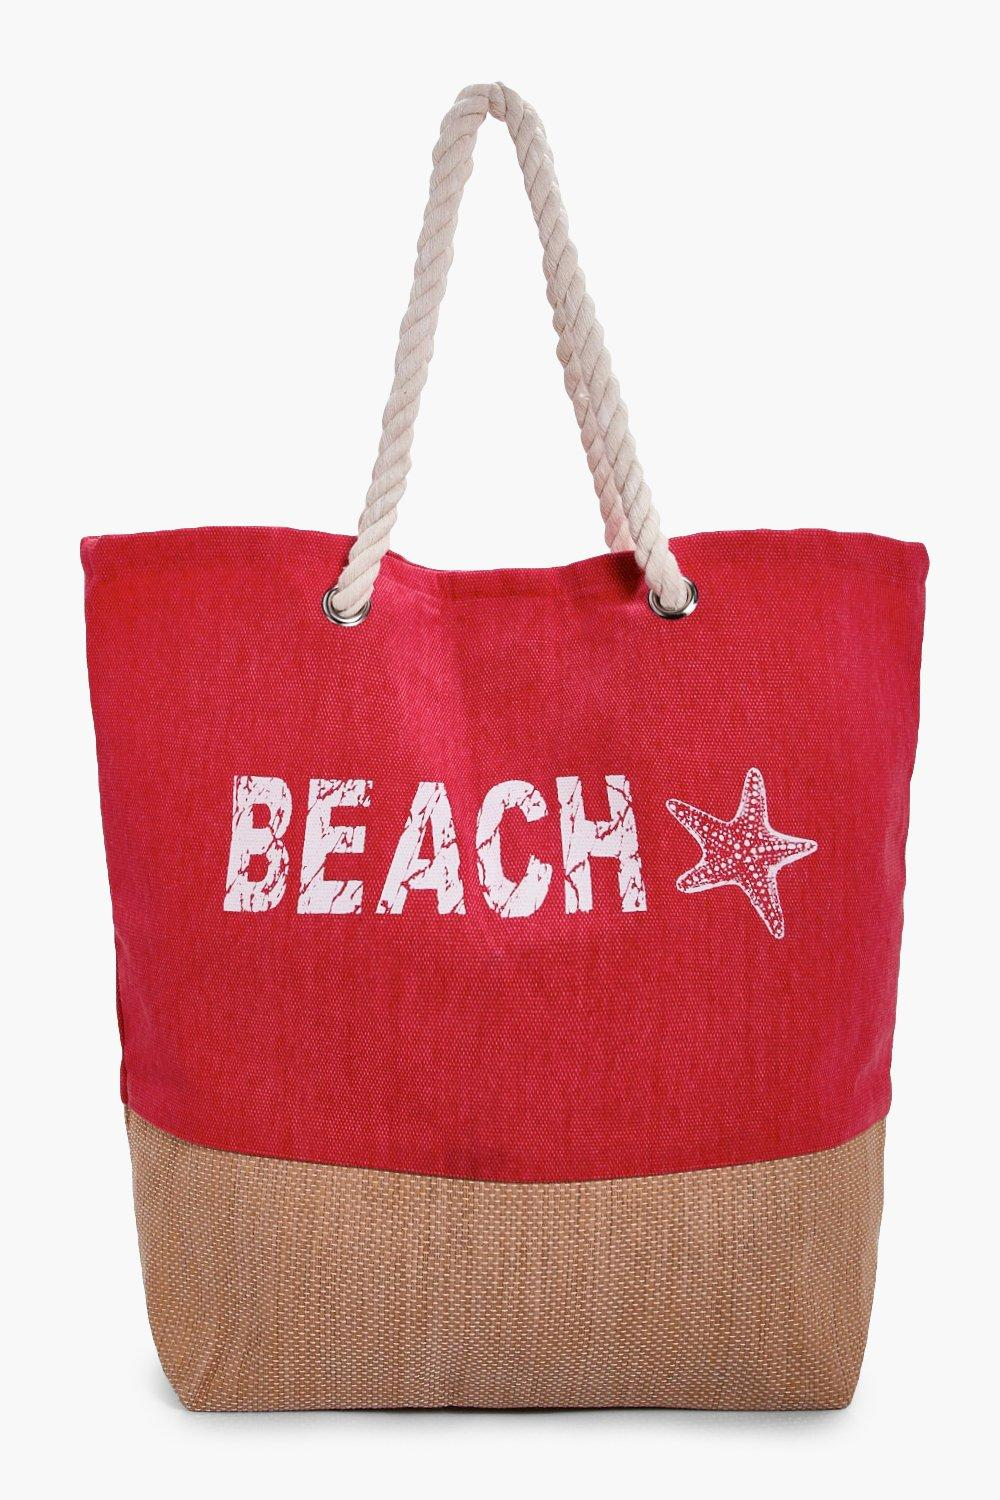 Beach Slogan Beach bag - red - Lucy Beach Slogan B